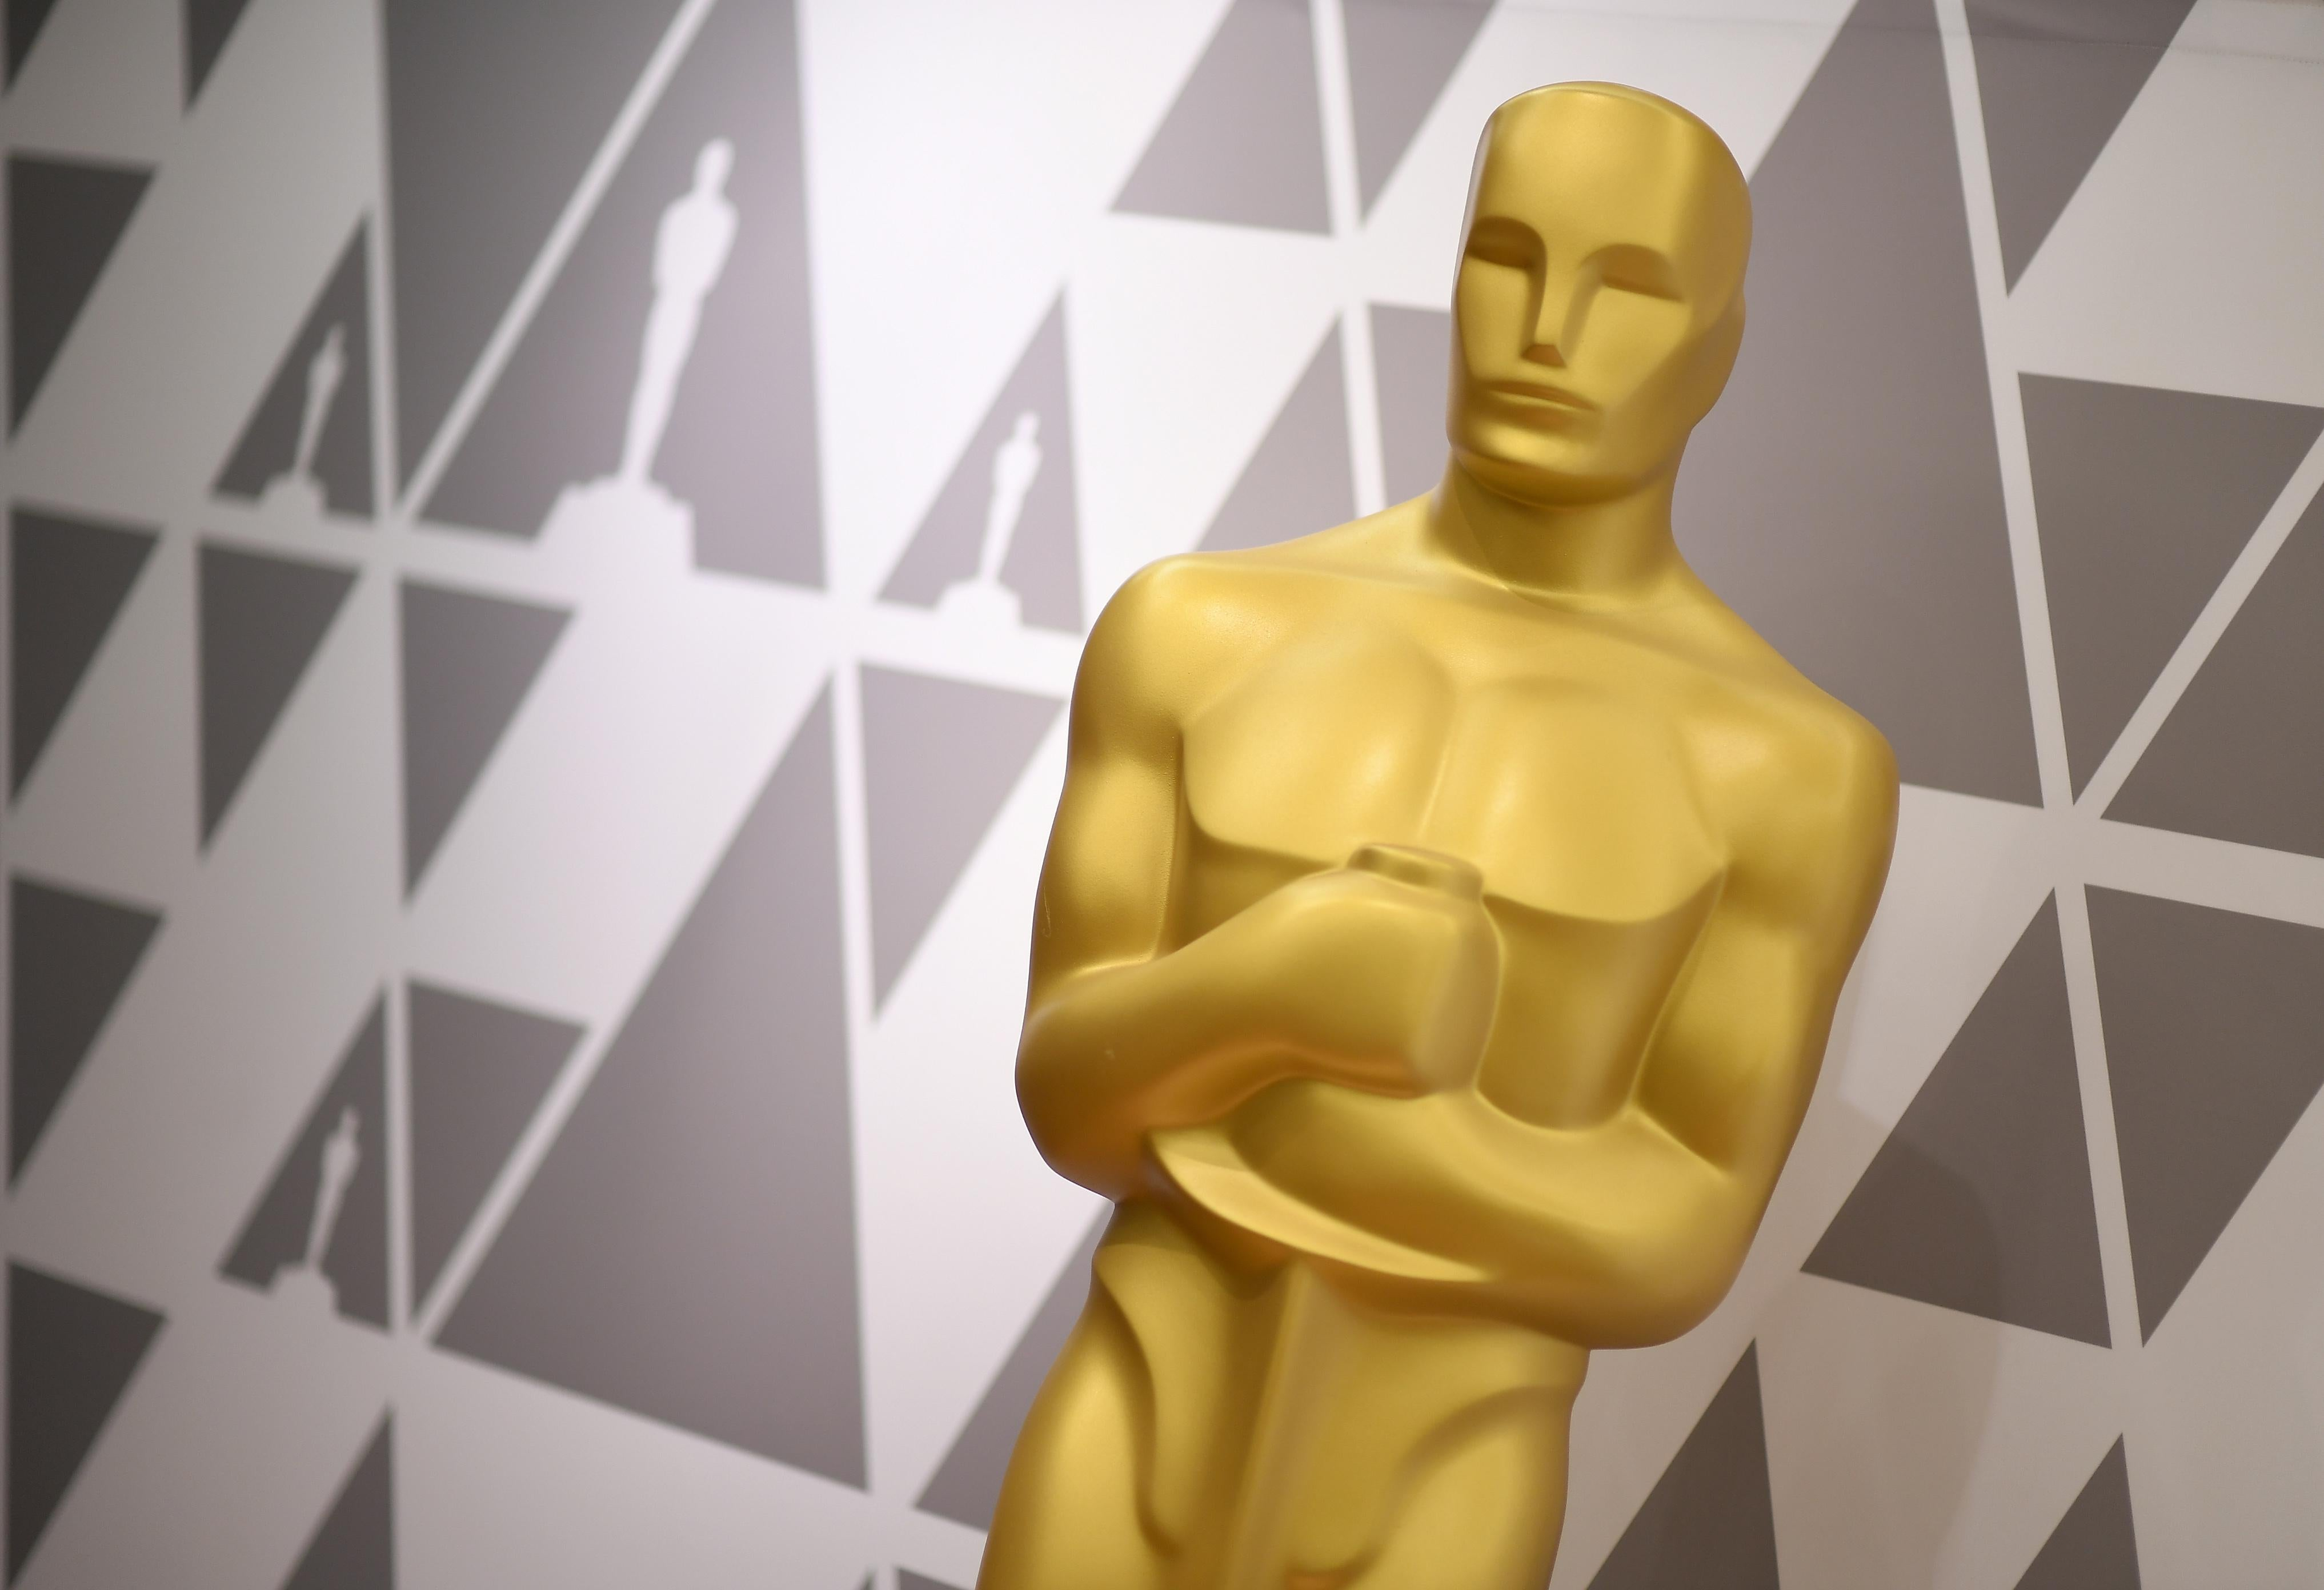 An Oscar Statue during preparations for the 90th annual Academy Awards.